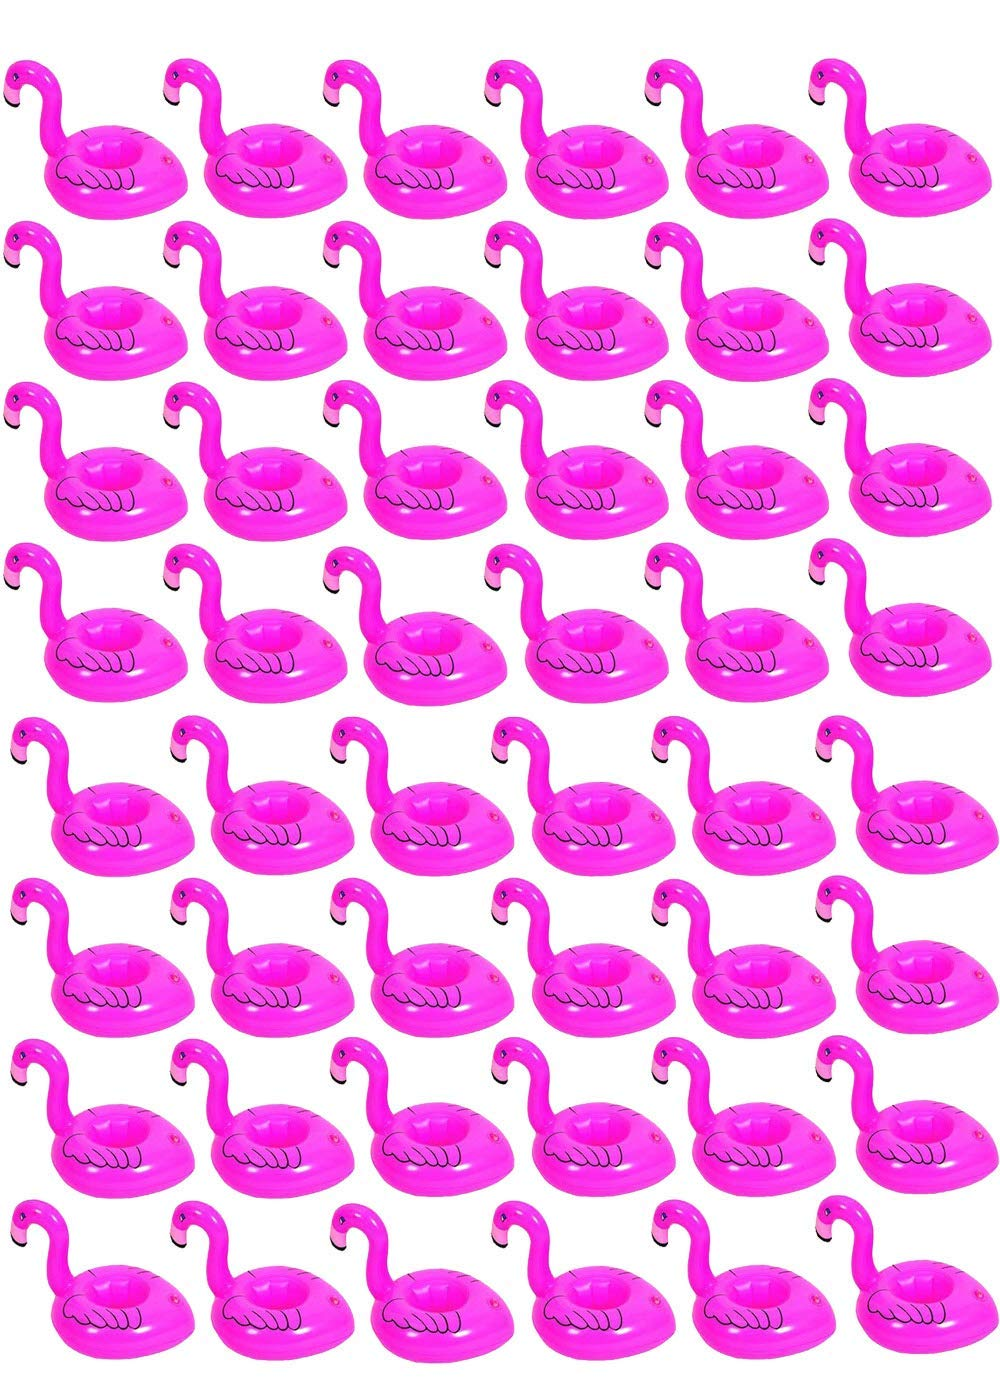 48 pcs Pink Flamingo Drink Pool Float,Flamingo Inflatable Drink Coasters Holder Floating Can Coke Cup Stand for Pool Swim Party, Cup Holders for Bachelorette Party and Birthday Party and Anniversaries by Yourss